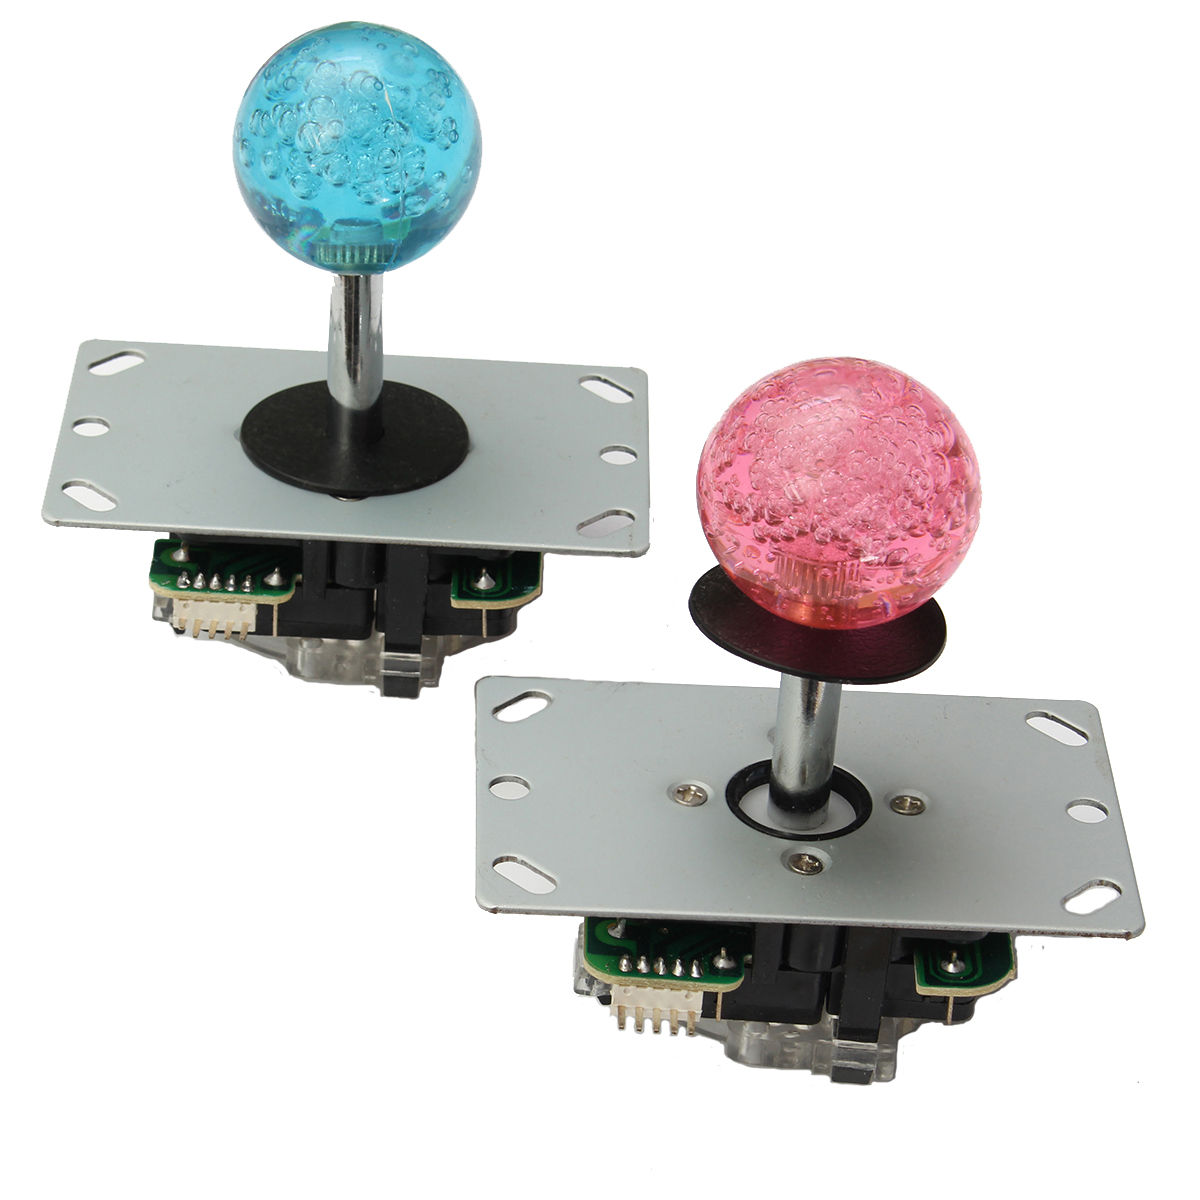 Arcade LED MAME 2 Player USB Bundle Kit 2 PC Joystick 4